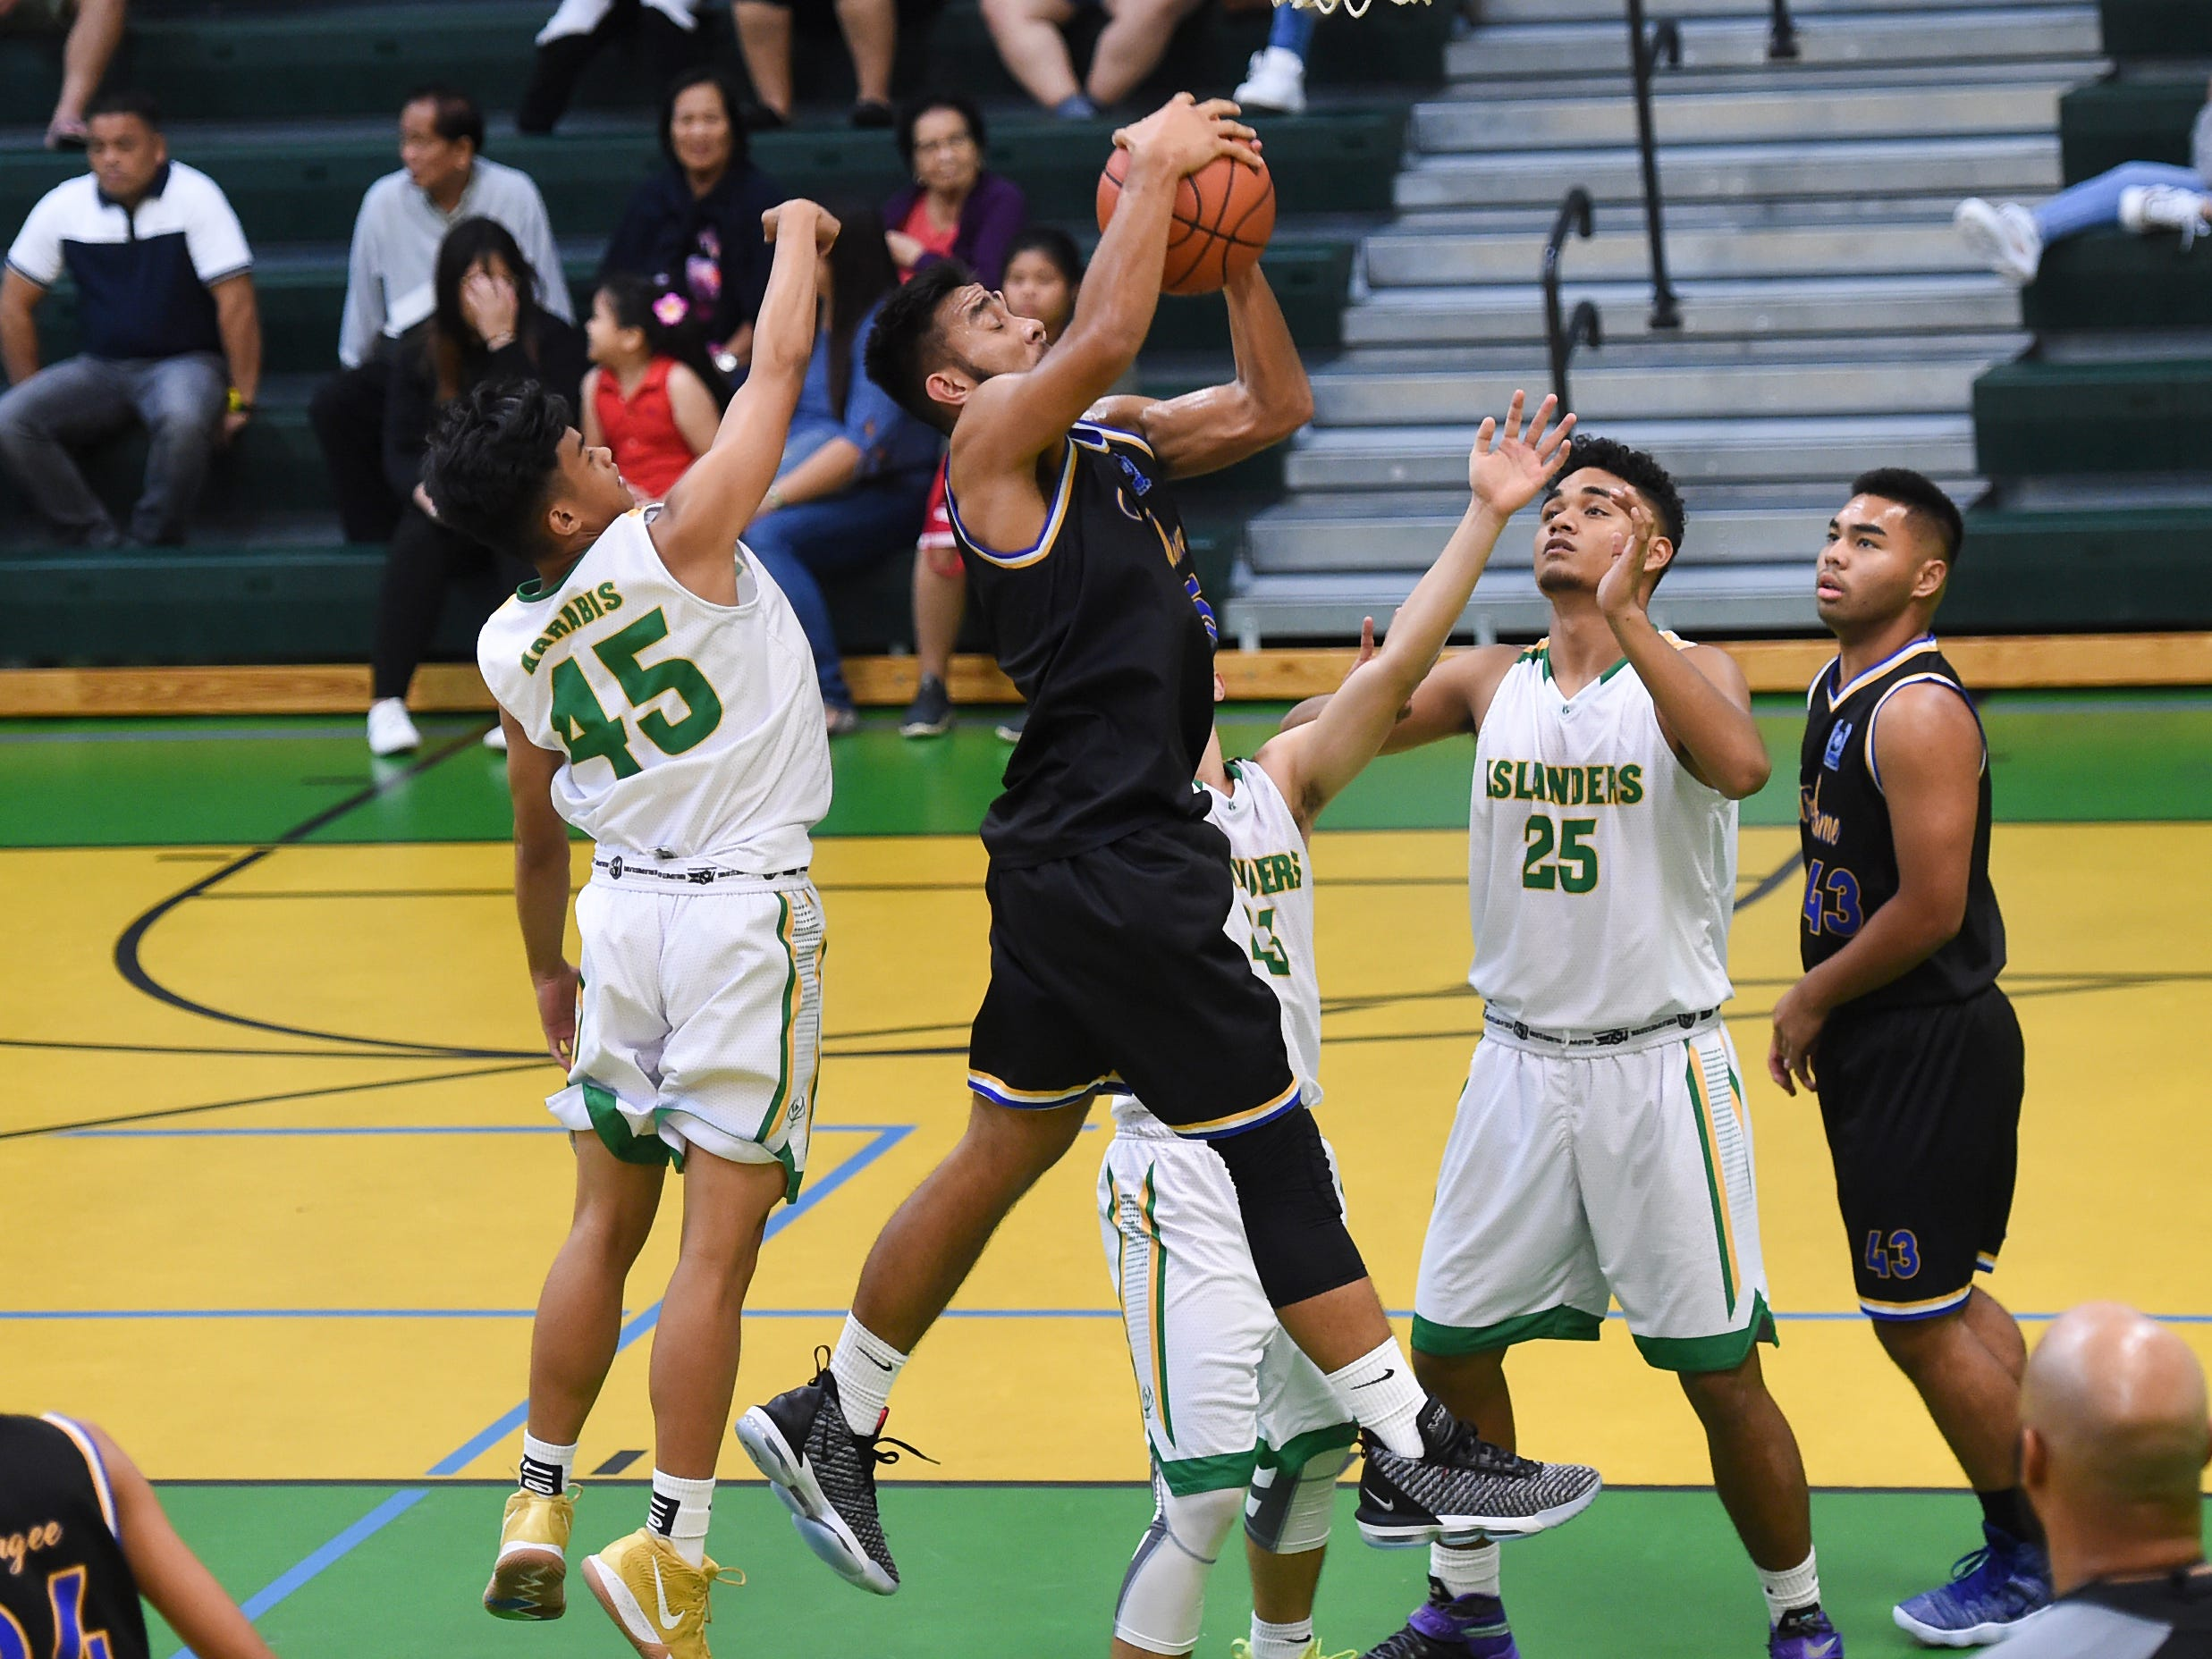 Peter Cruz grabs a rebound for the Notre Dame Royals during an Independent Interscholastic Athletic Association of Guam Boys' Basketball game at the John F. Kennedy High School Gym, Feb. 2, 2019.